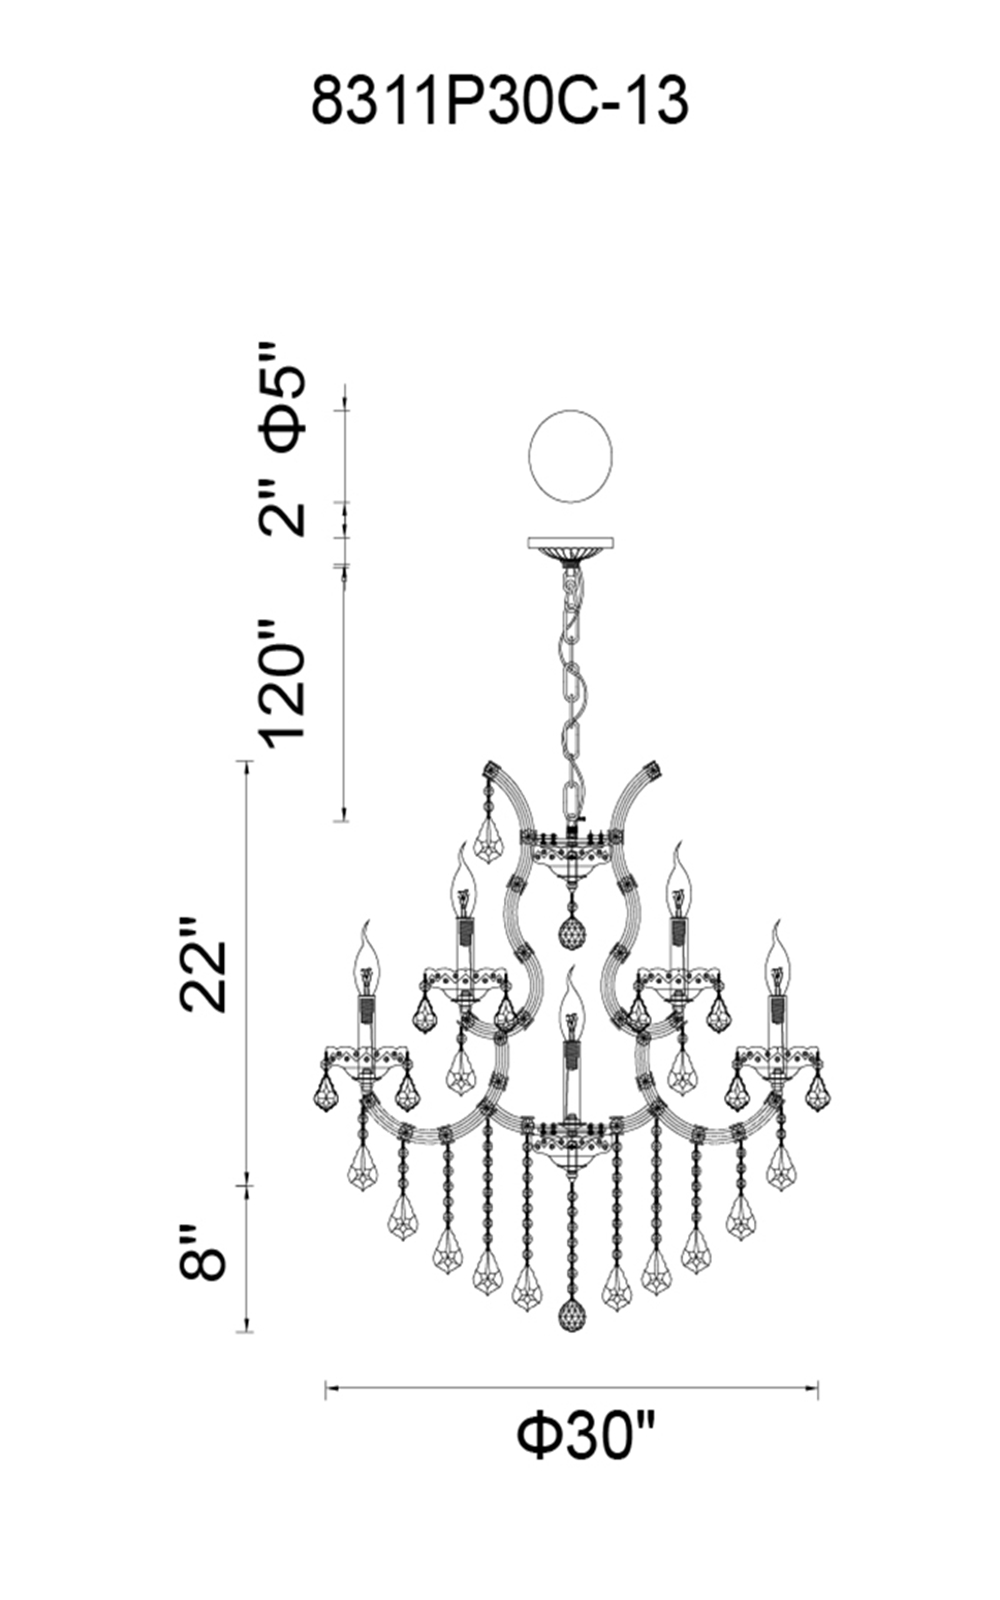 CWI Lighting Maria Theresa 13 Light Up Chandelier With Chrome Finish Model: 8311P30C-13 (CLEAR) Line Drawing